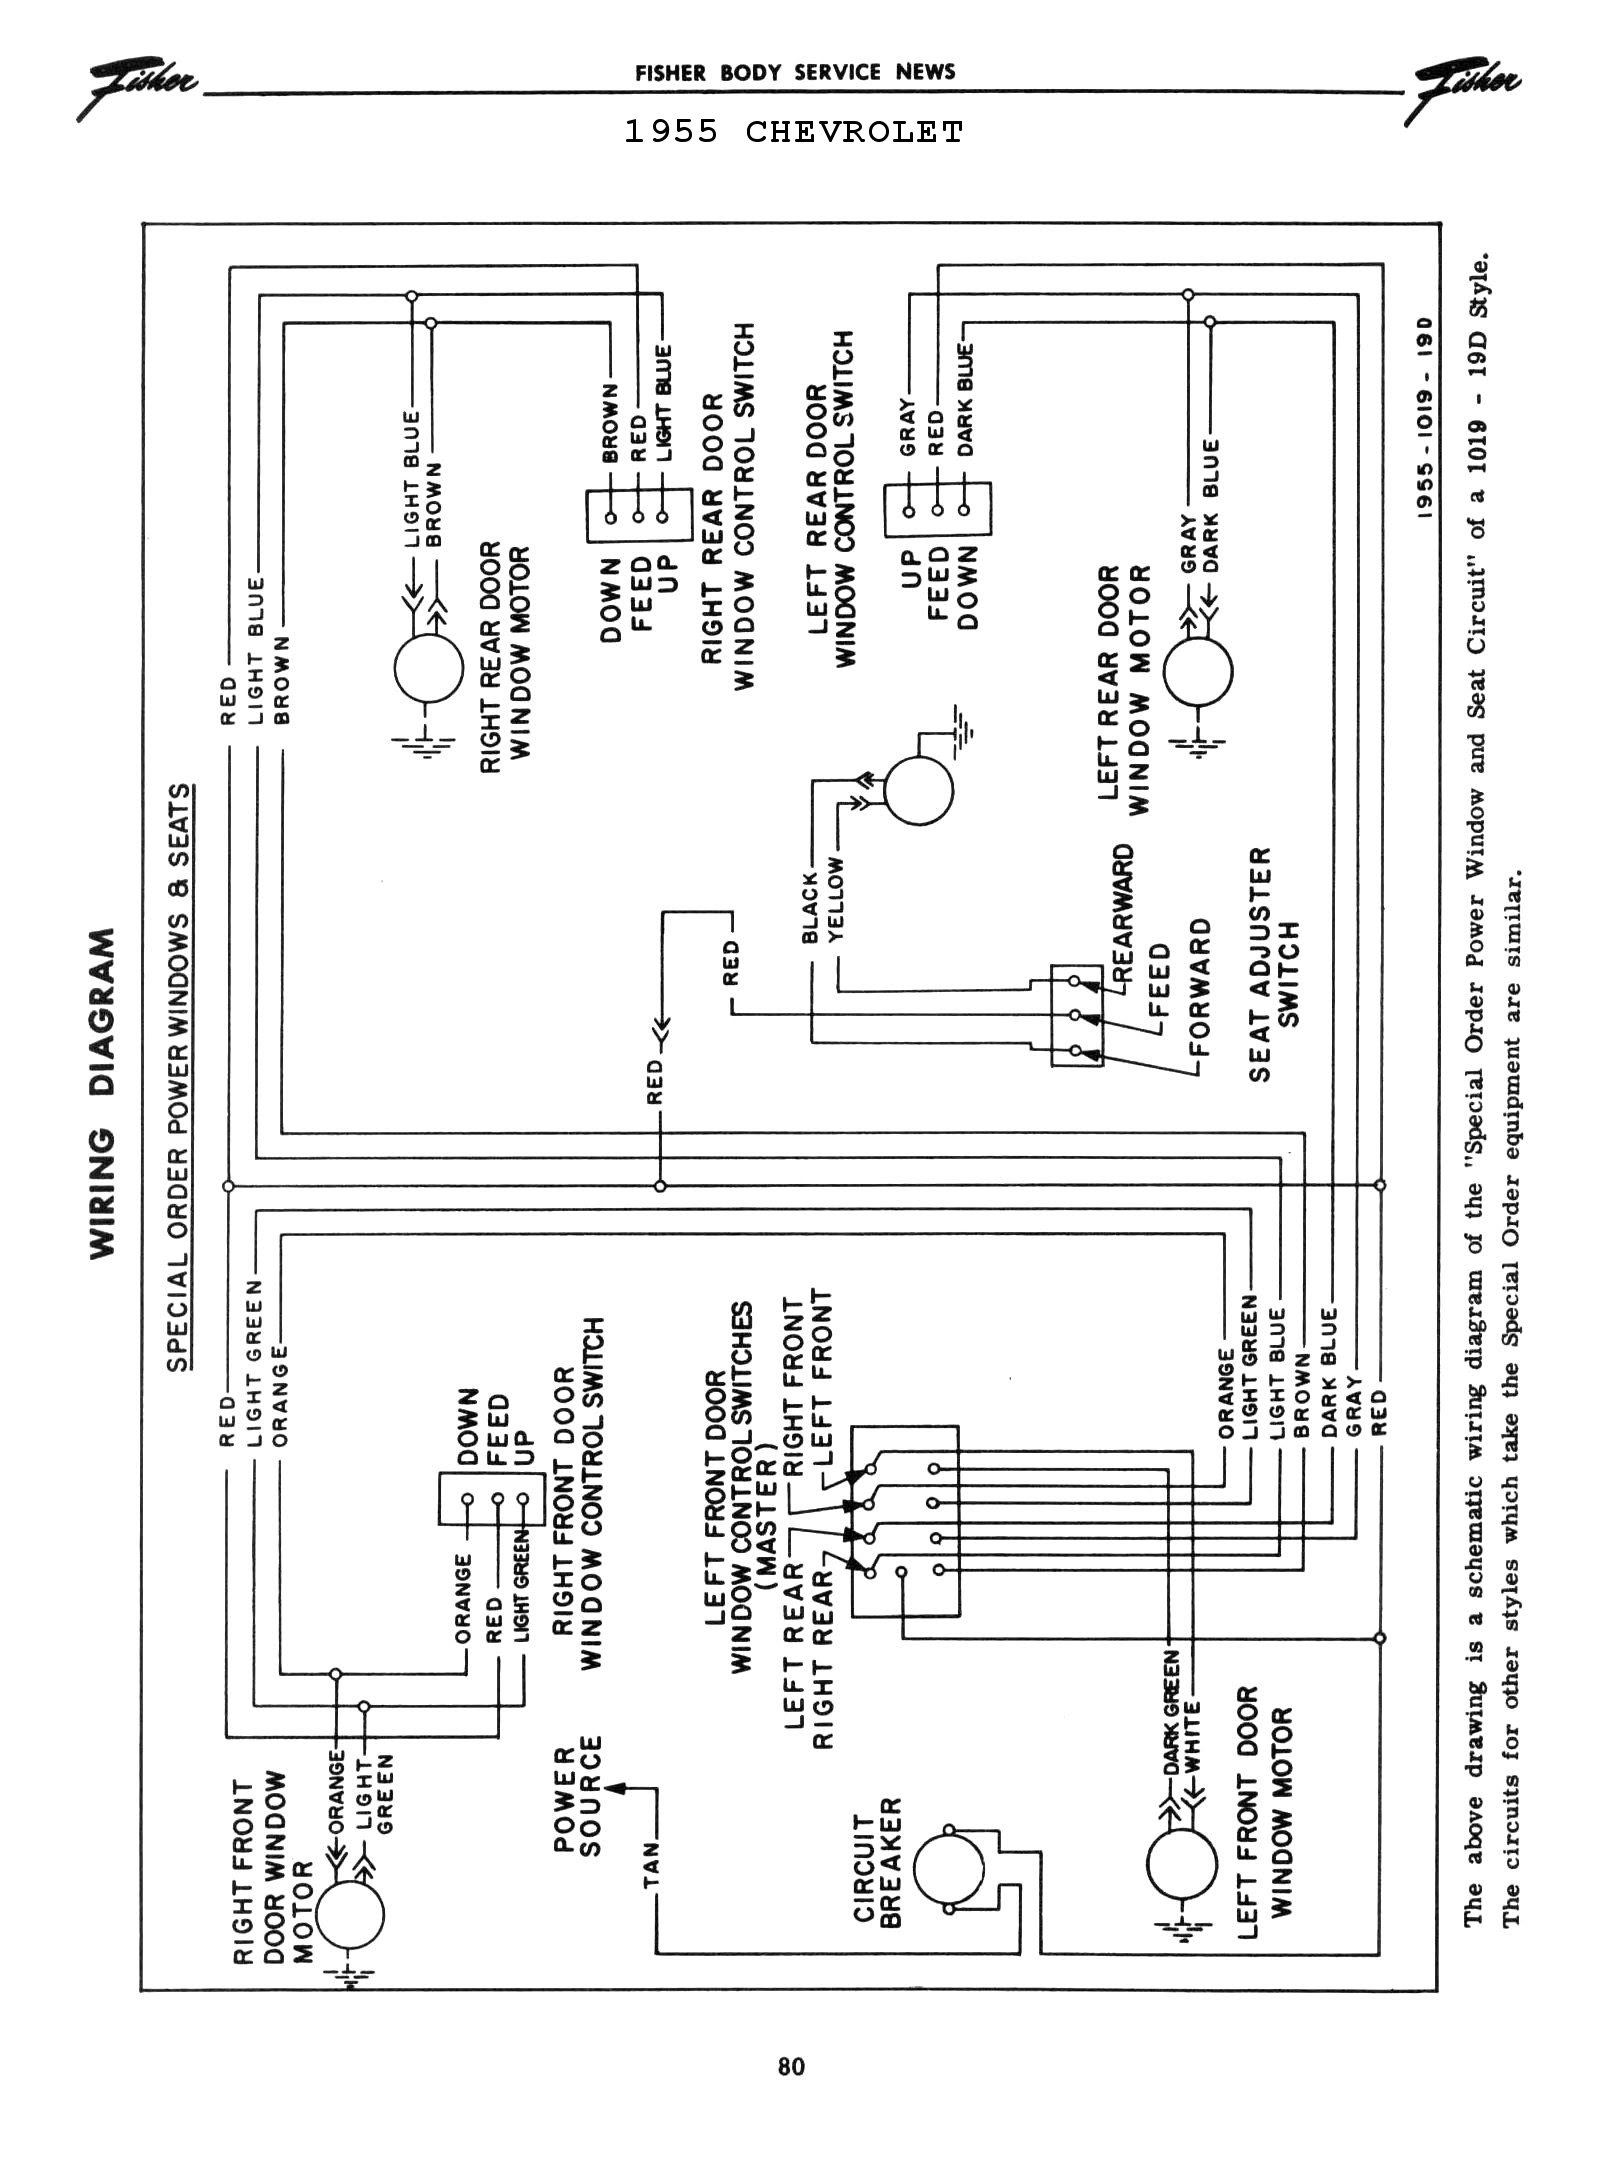 55 Chevy Wiring Schematic Wiring Diagram Corsa Corsa Pasticceriagele It